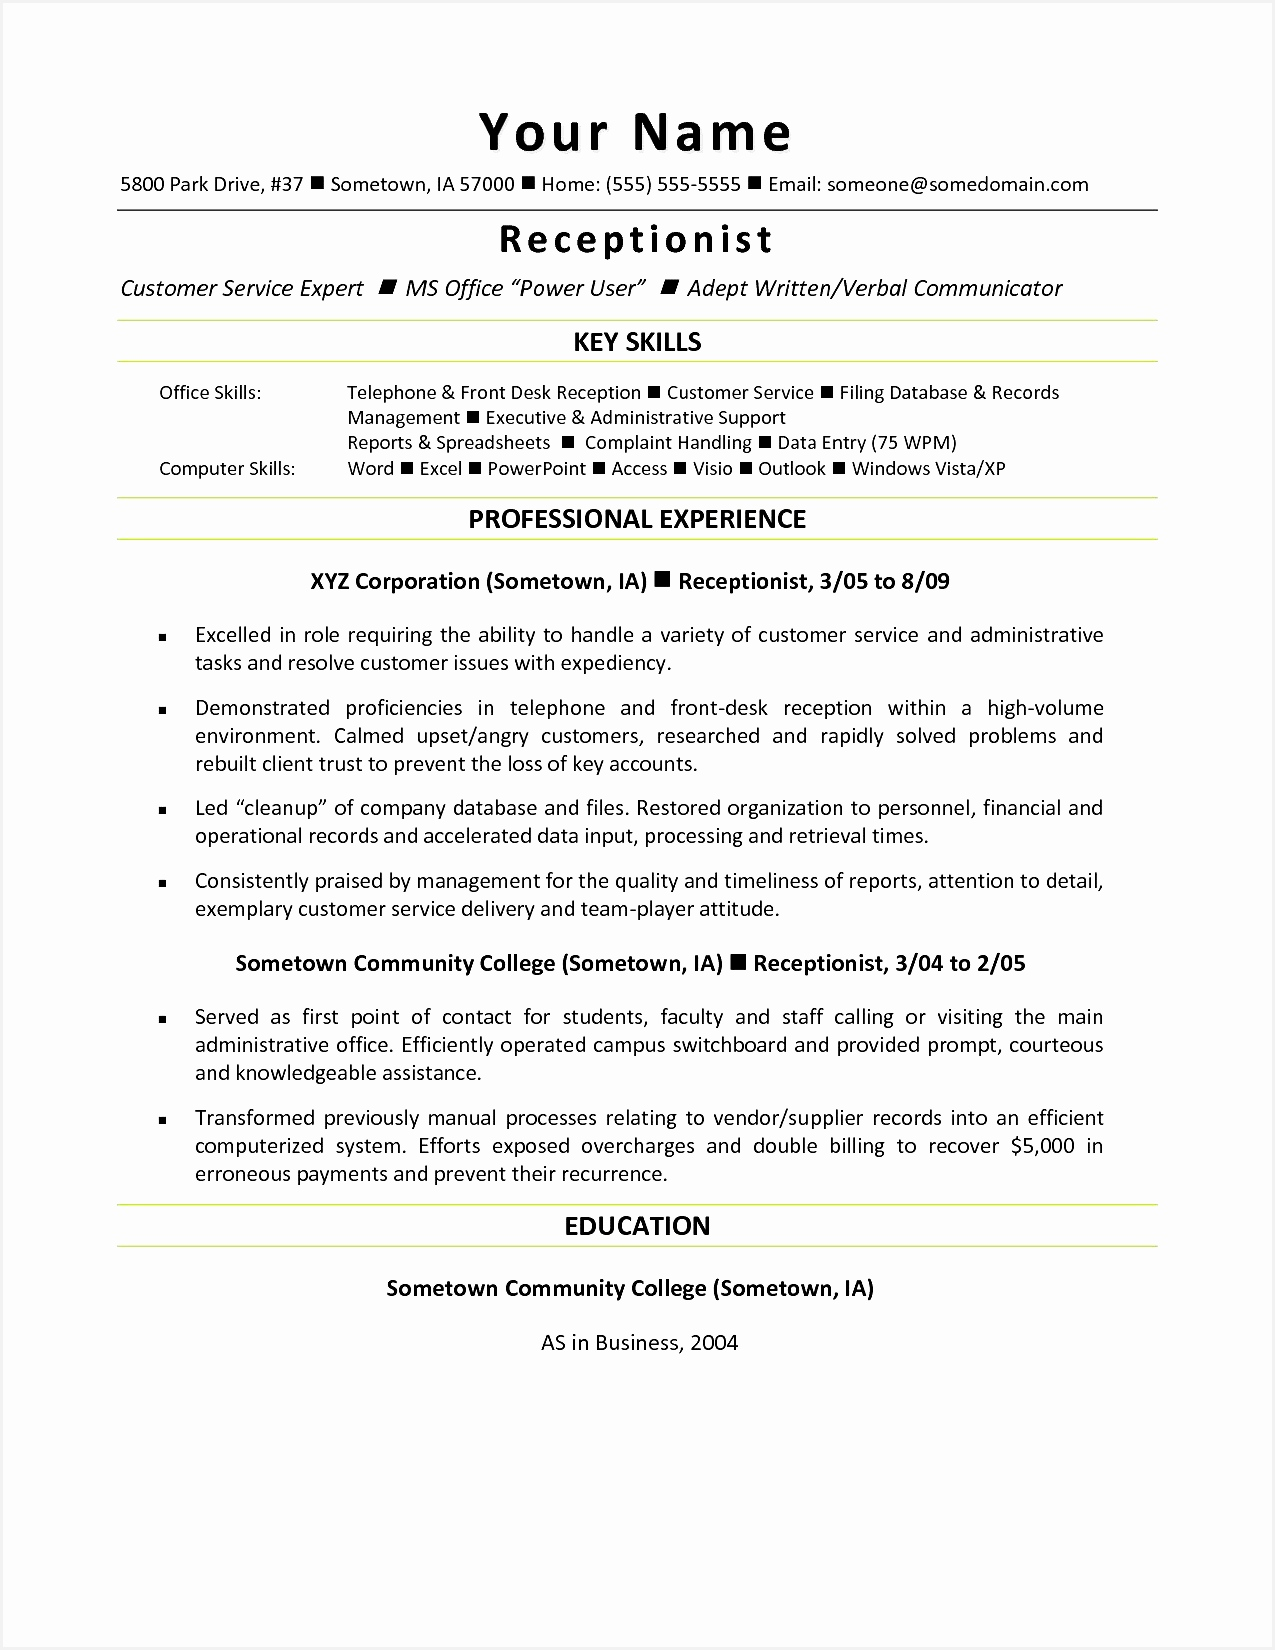 Microsoft Word Document Templates Elegant Best Federal Government Resume Template Best Bsw Resume 0d16501275